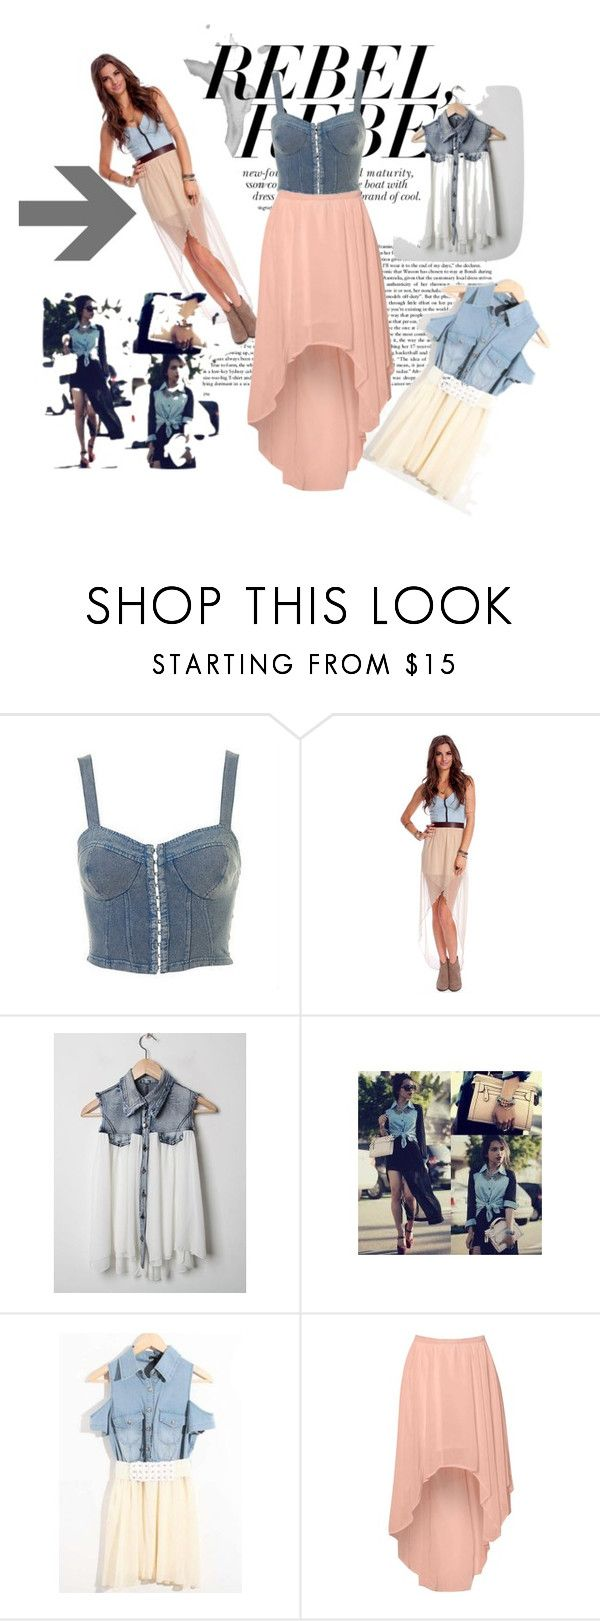 """Denim and Chiffon"" by chynabfierce ❤ liked on Polyvore featuring Topshop, Oxford Circus and Glamorous"